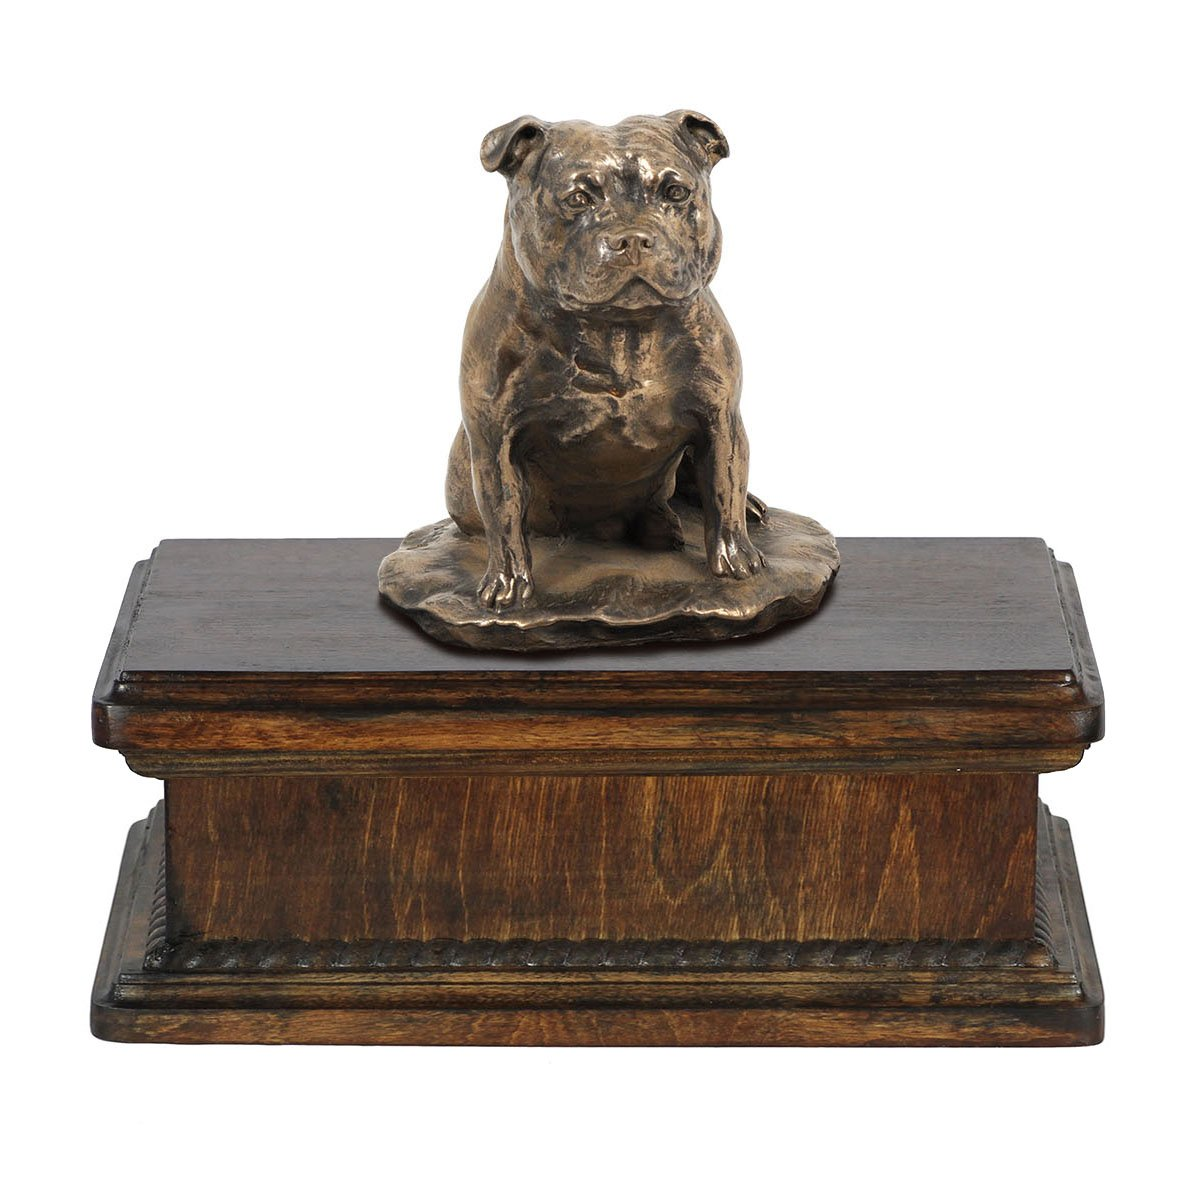 Staffordshire Bull Terrier, memorial, urn for dog's ashes, with dog statue, exclusive, ArtDog